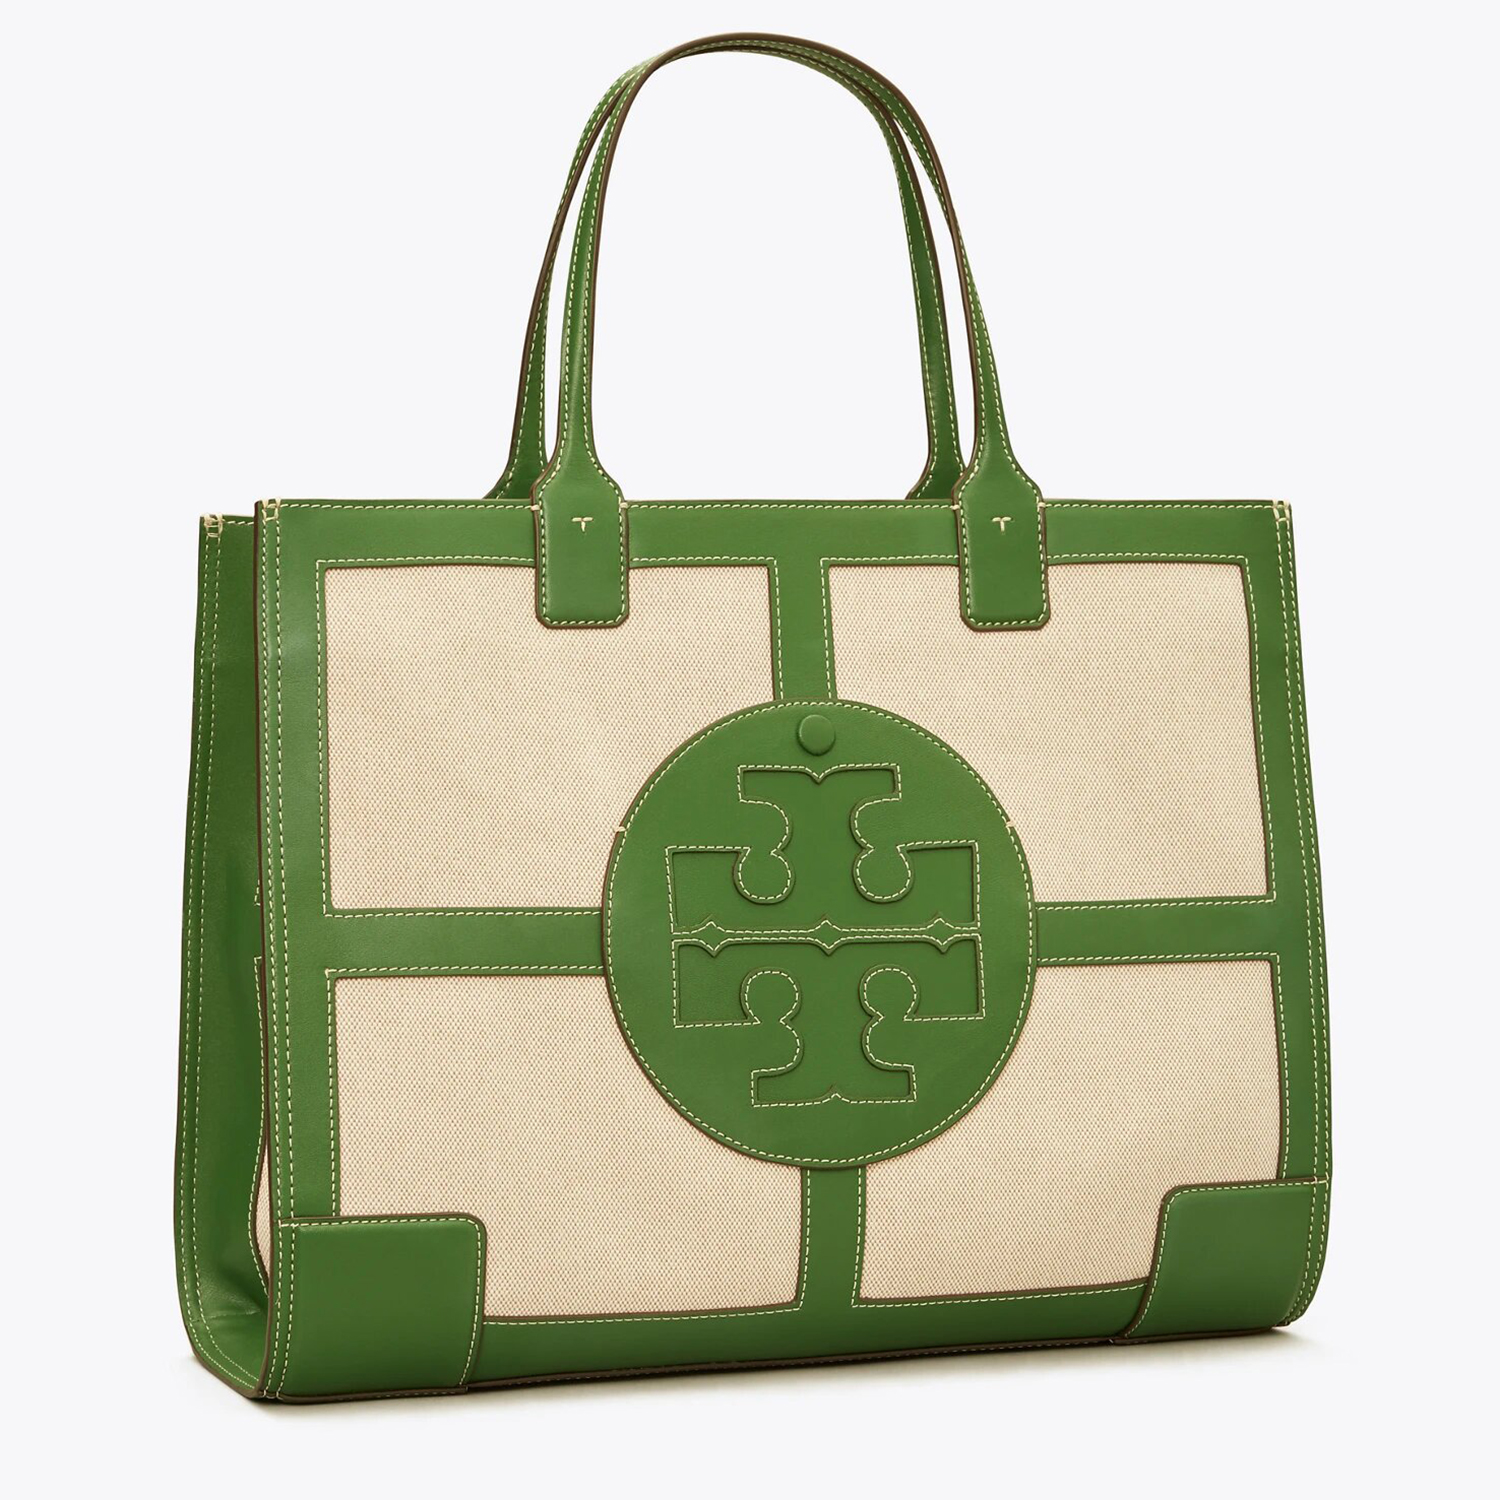 Tory Burch Ella Canvas Quadrant Tote